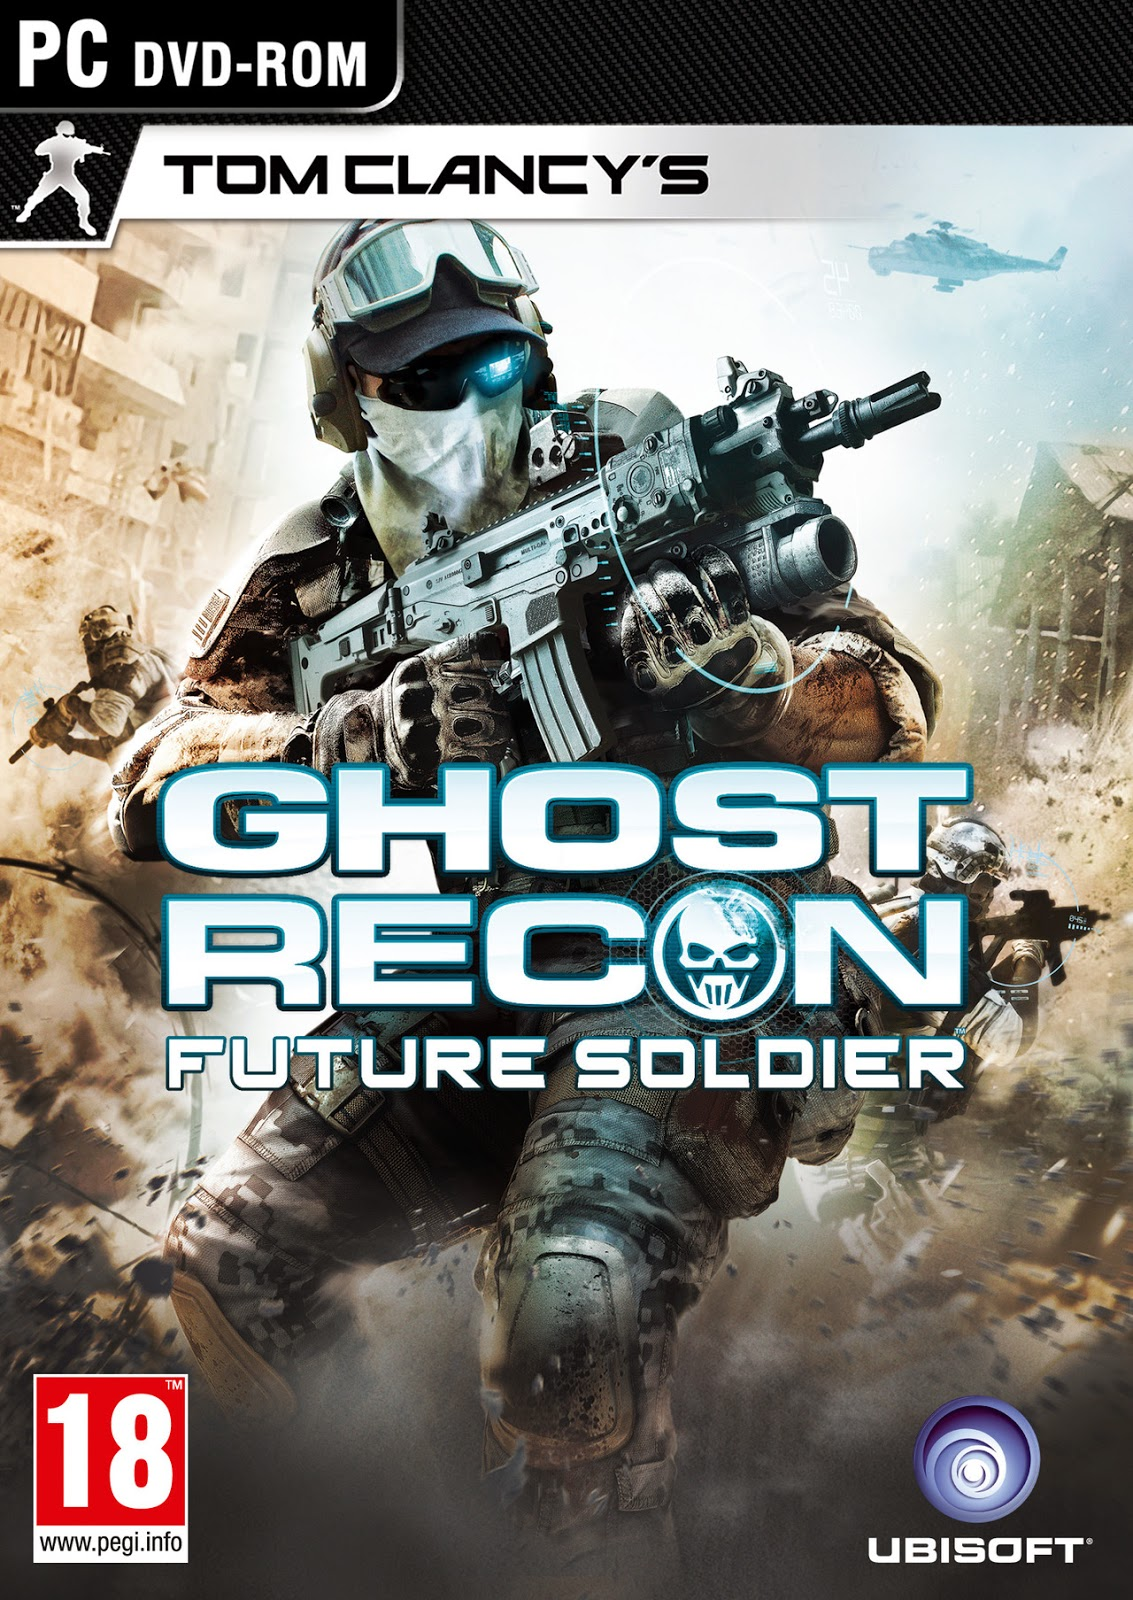 Tom Clancy's Ghost Recon : Future Soldier - PC Full  Skidrow